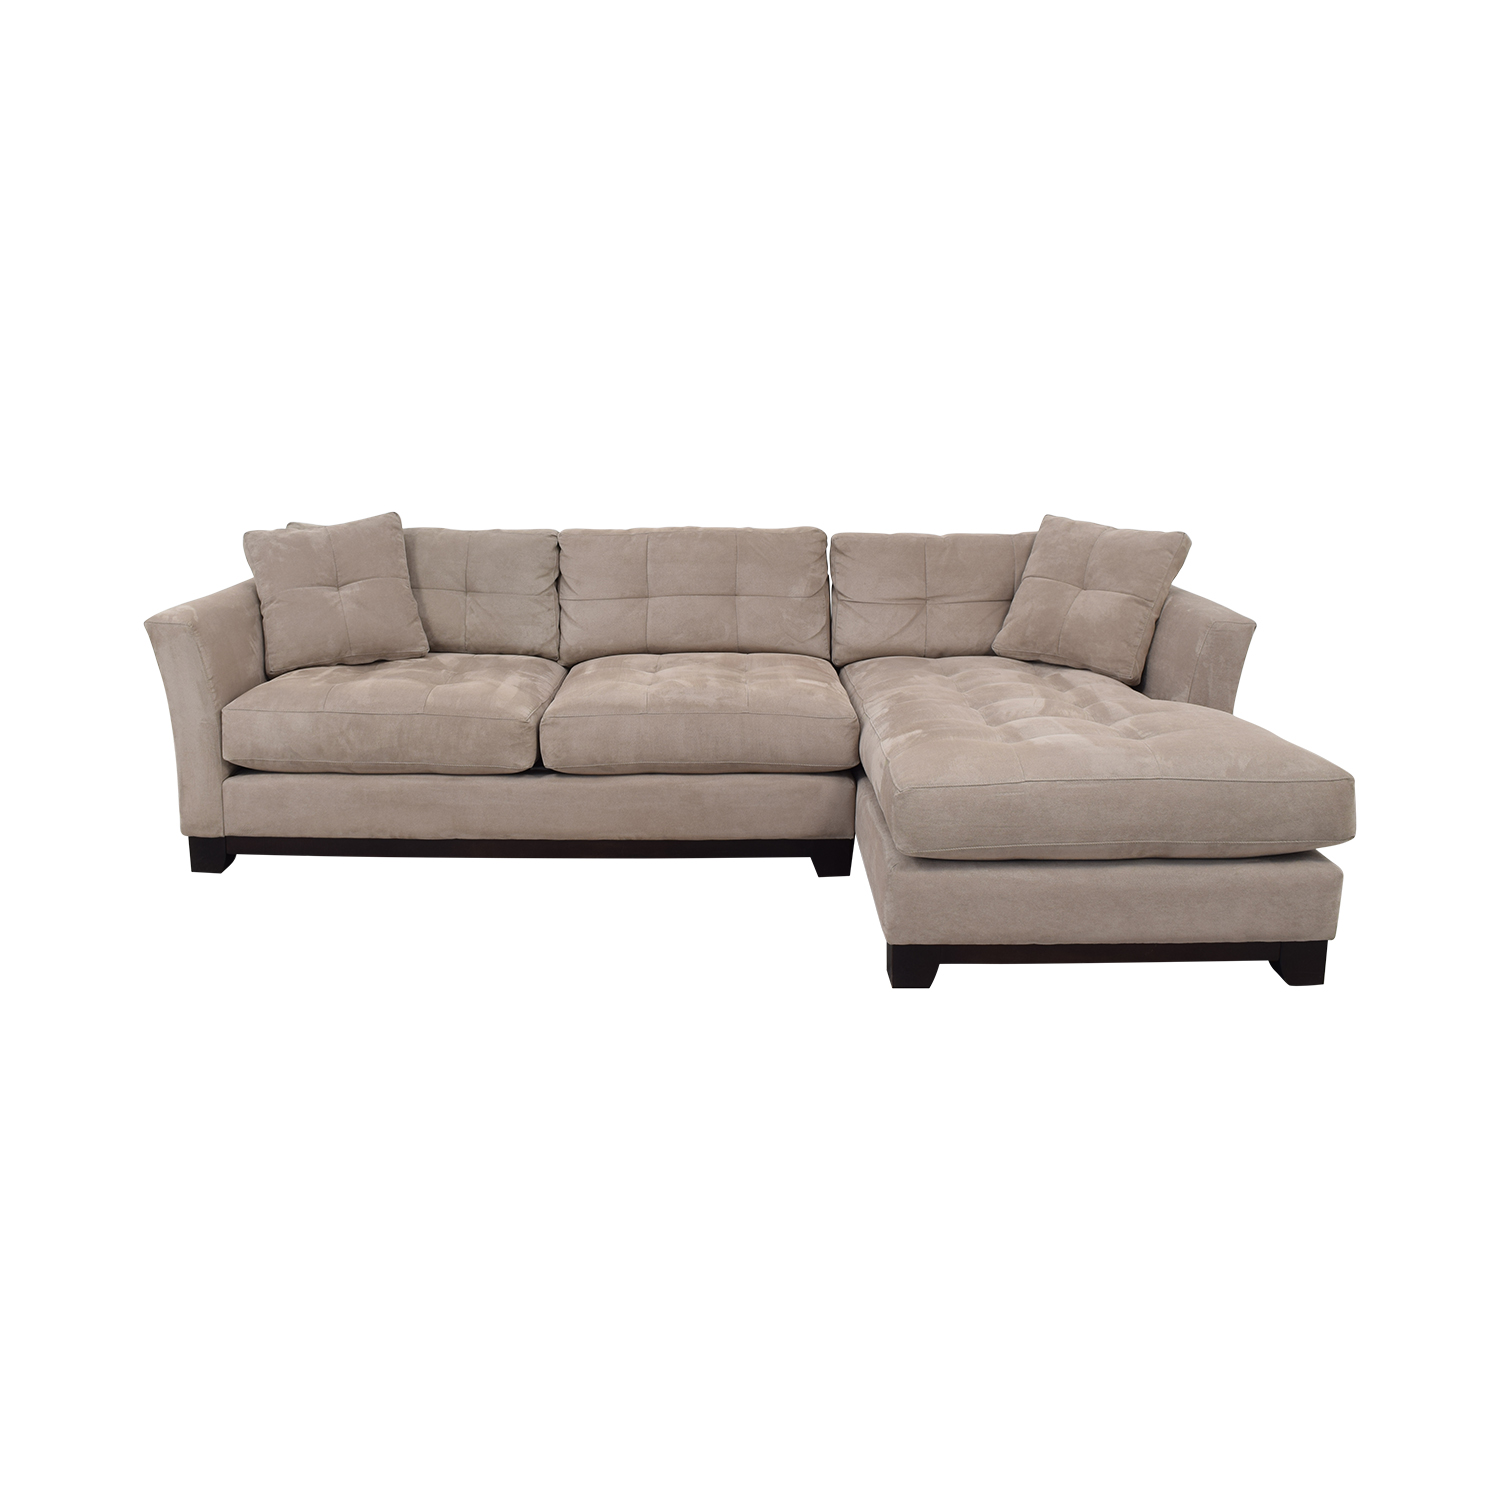 shop Macy's Elliot Cindy Crawford Grey Tufted Chaise Sectional Macy's Sofas